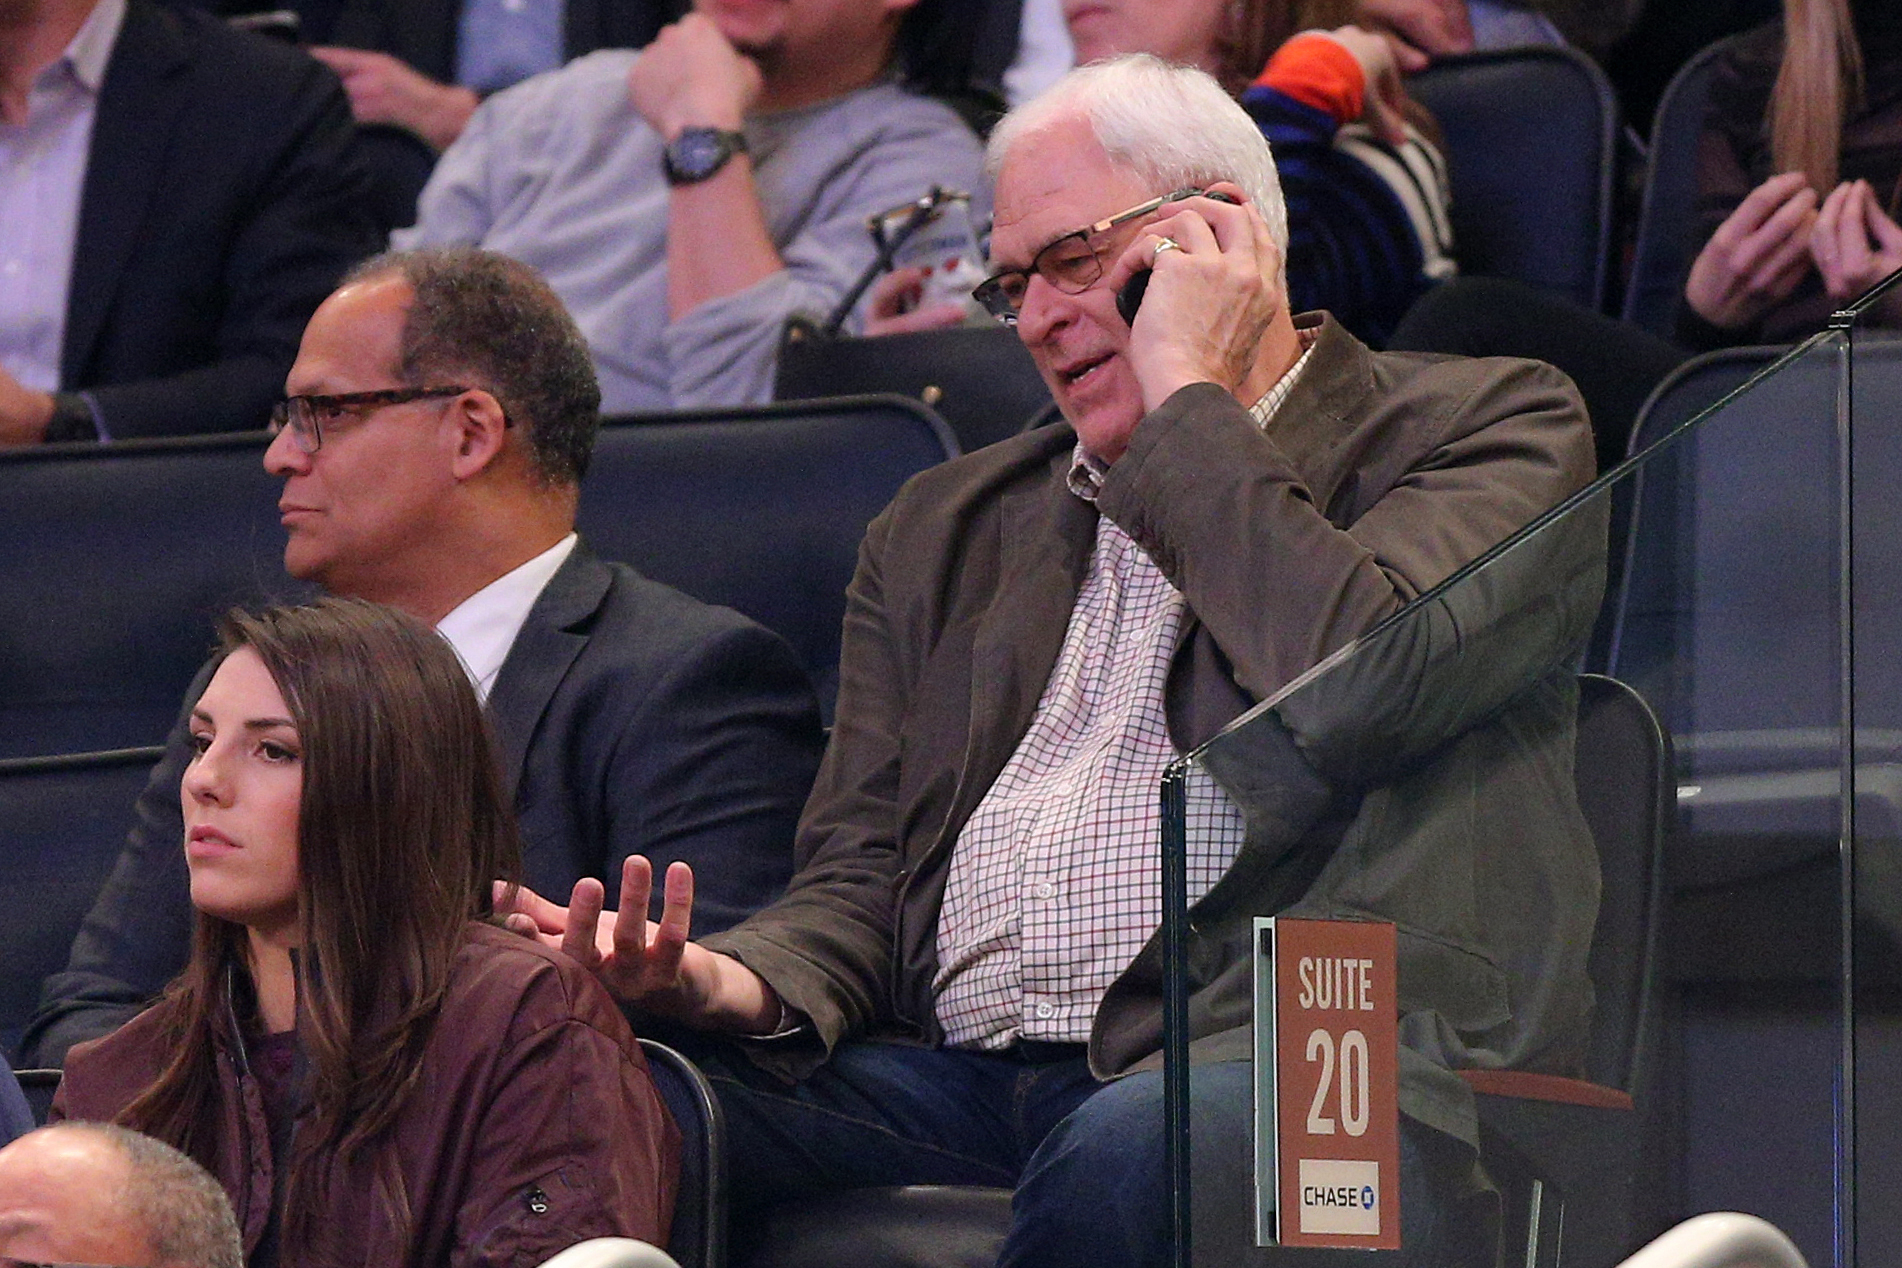 9866331-nba-los-angeles-clippers-at-new-york-knicks